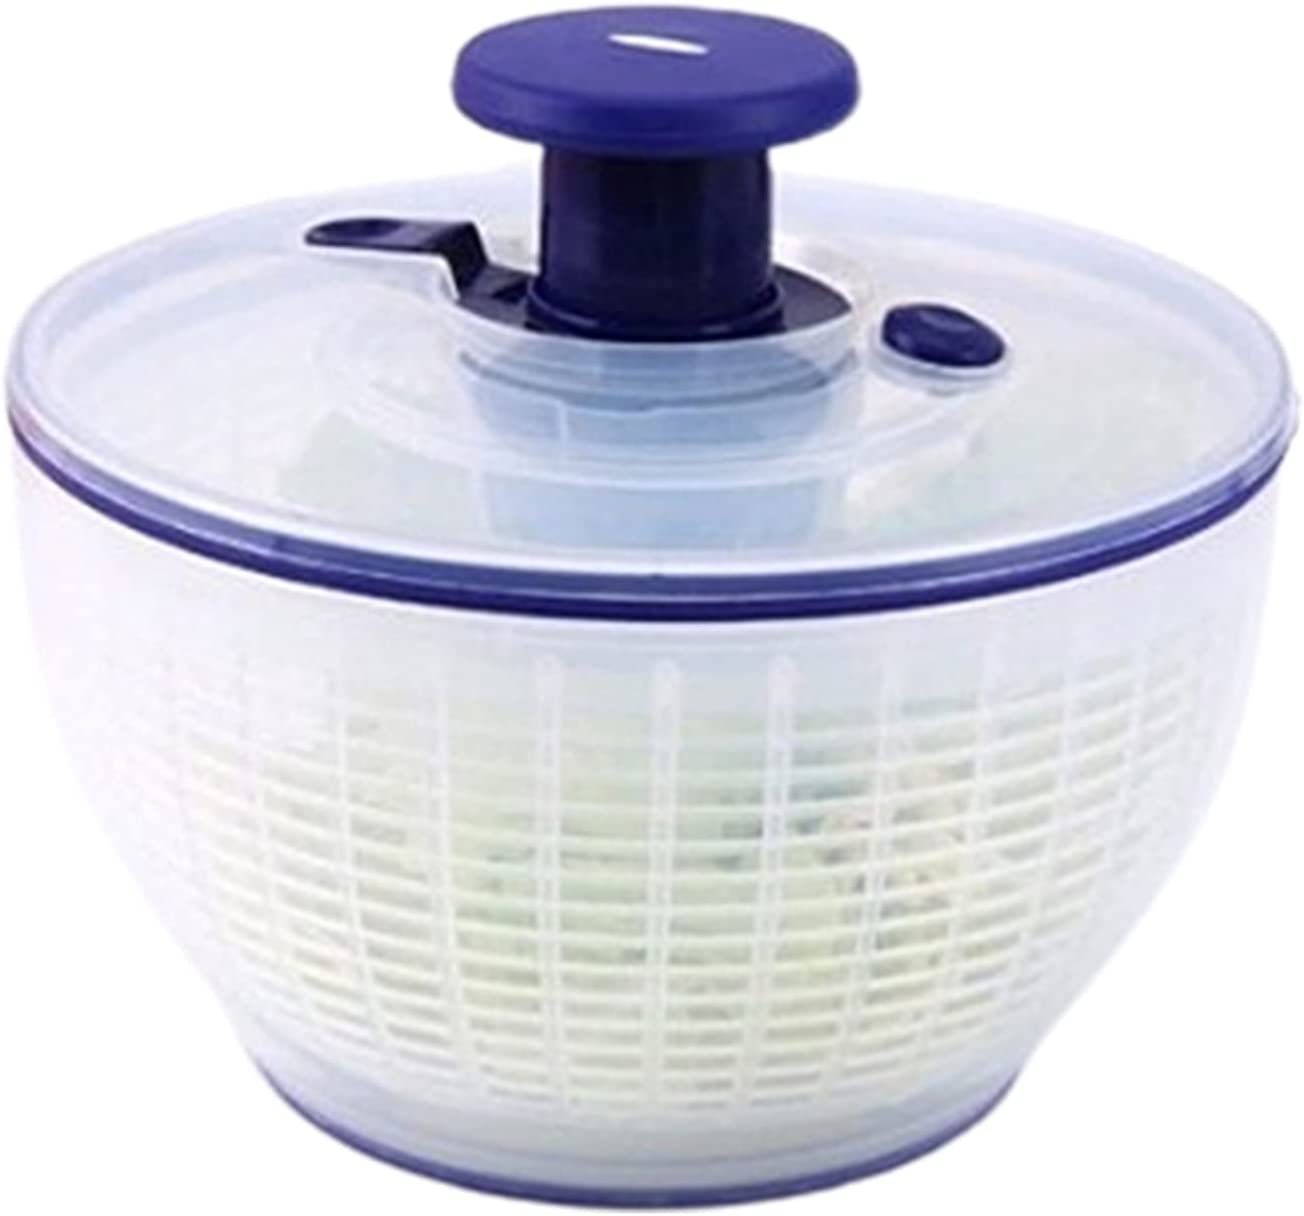 Salad Spinner Manual Spin SEAL limited product Limited time for free shipping Fruits Device Vegetables Lettuce